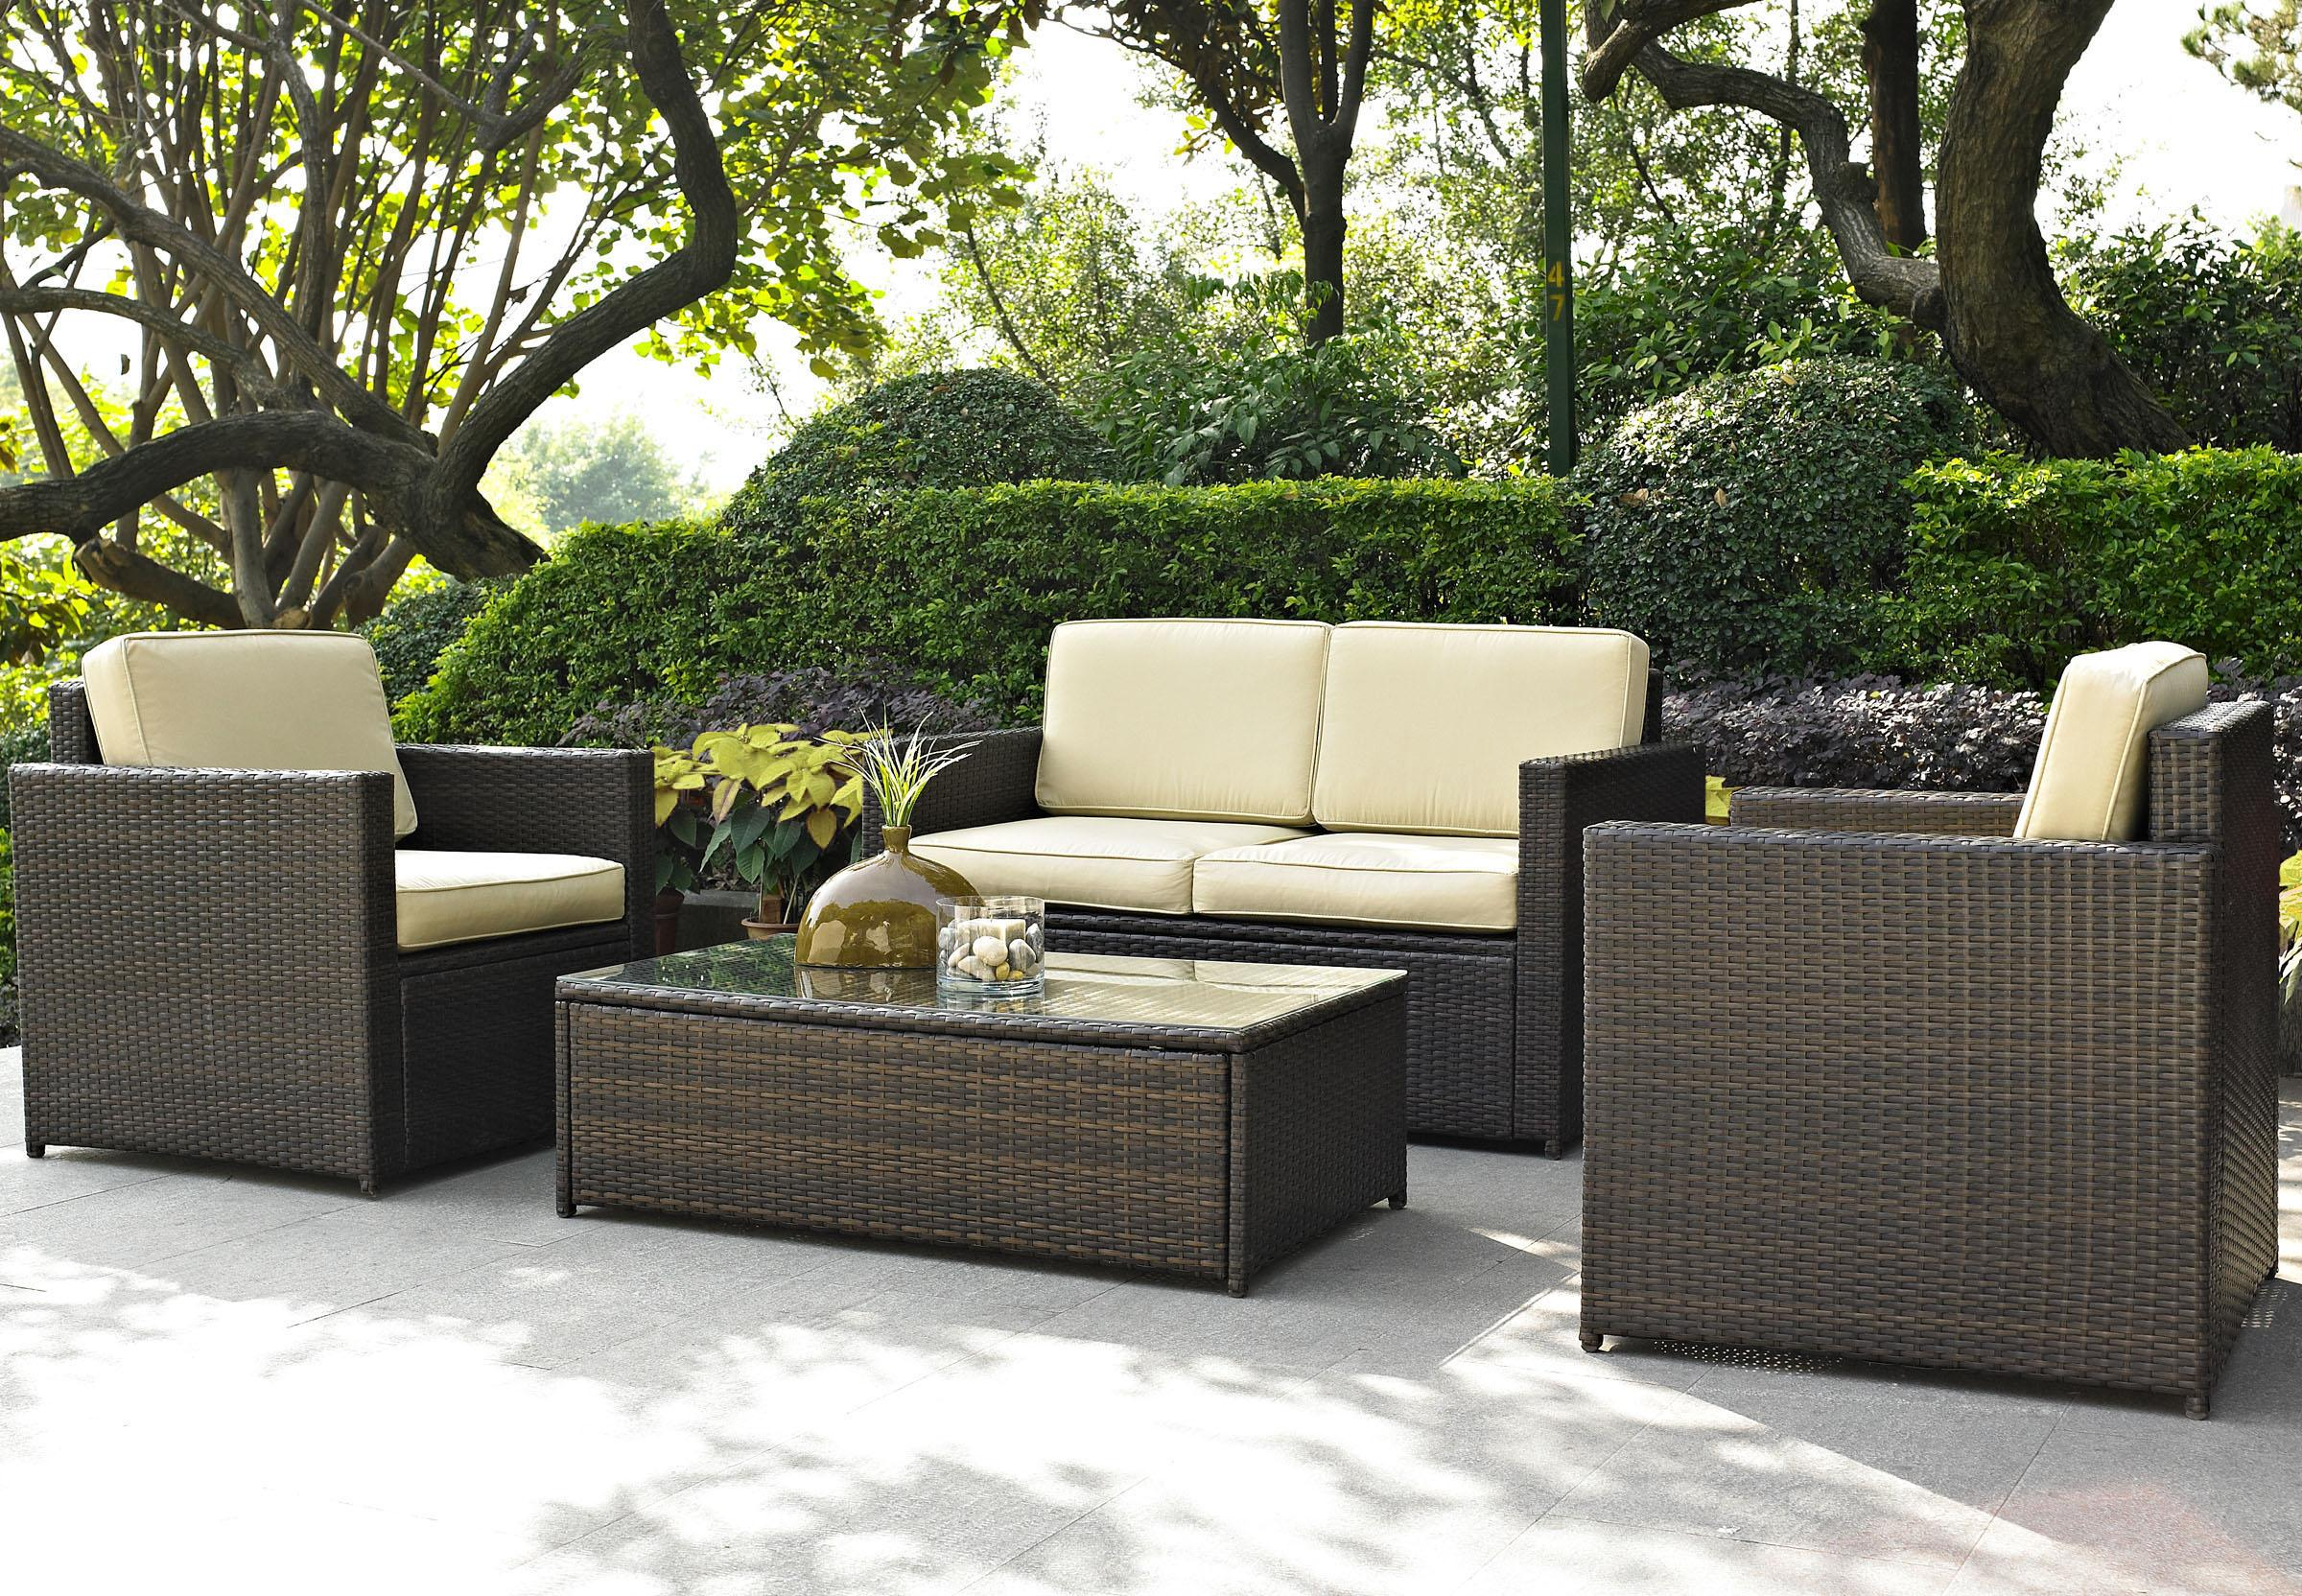 outdoor furniture comfortable dark wicker walmart patio furniture clearance on concrete  flooring for elegant NHUPAHZ